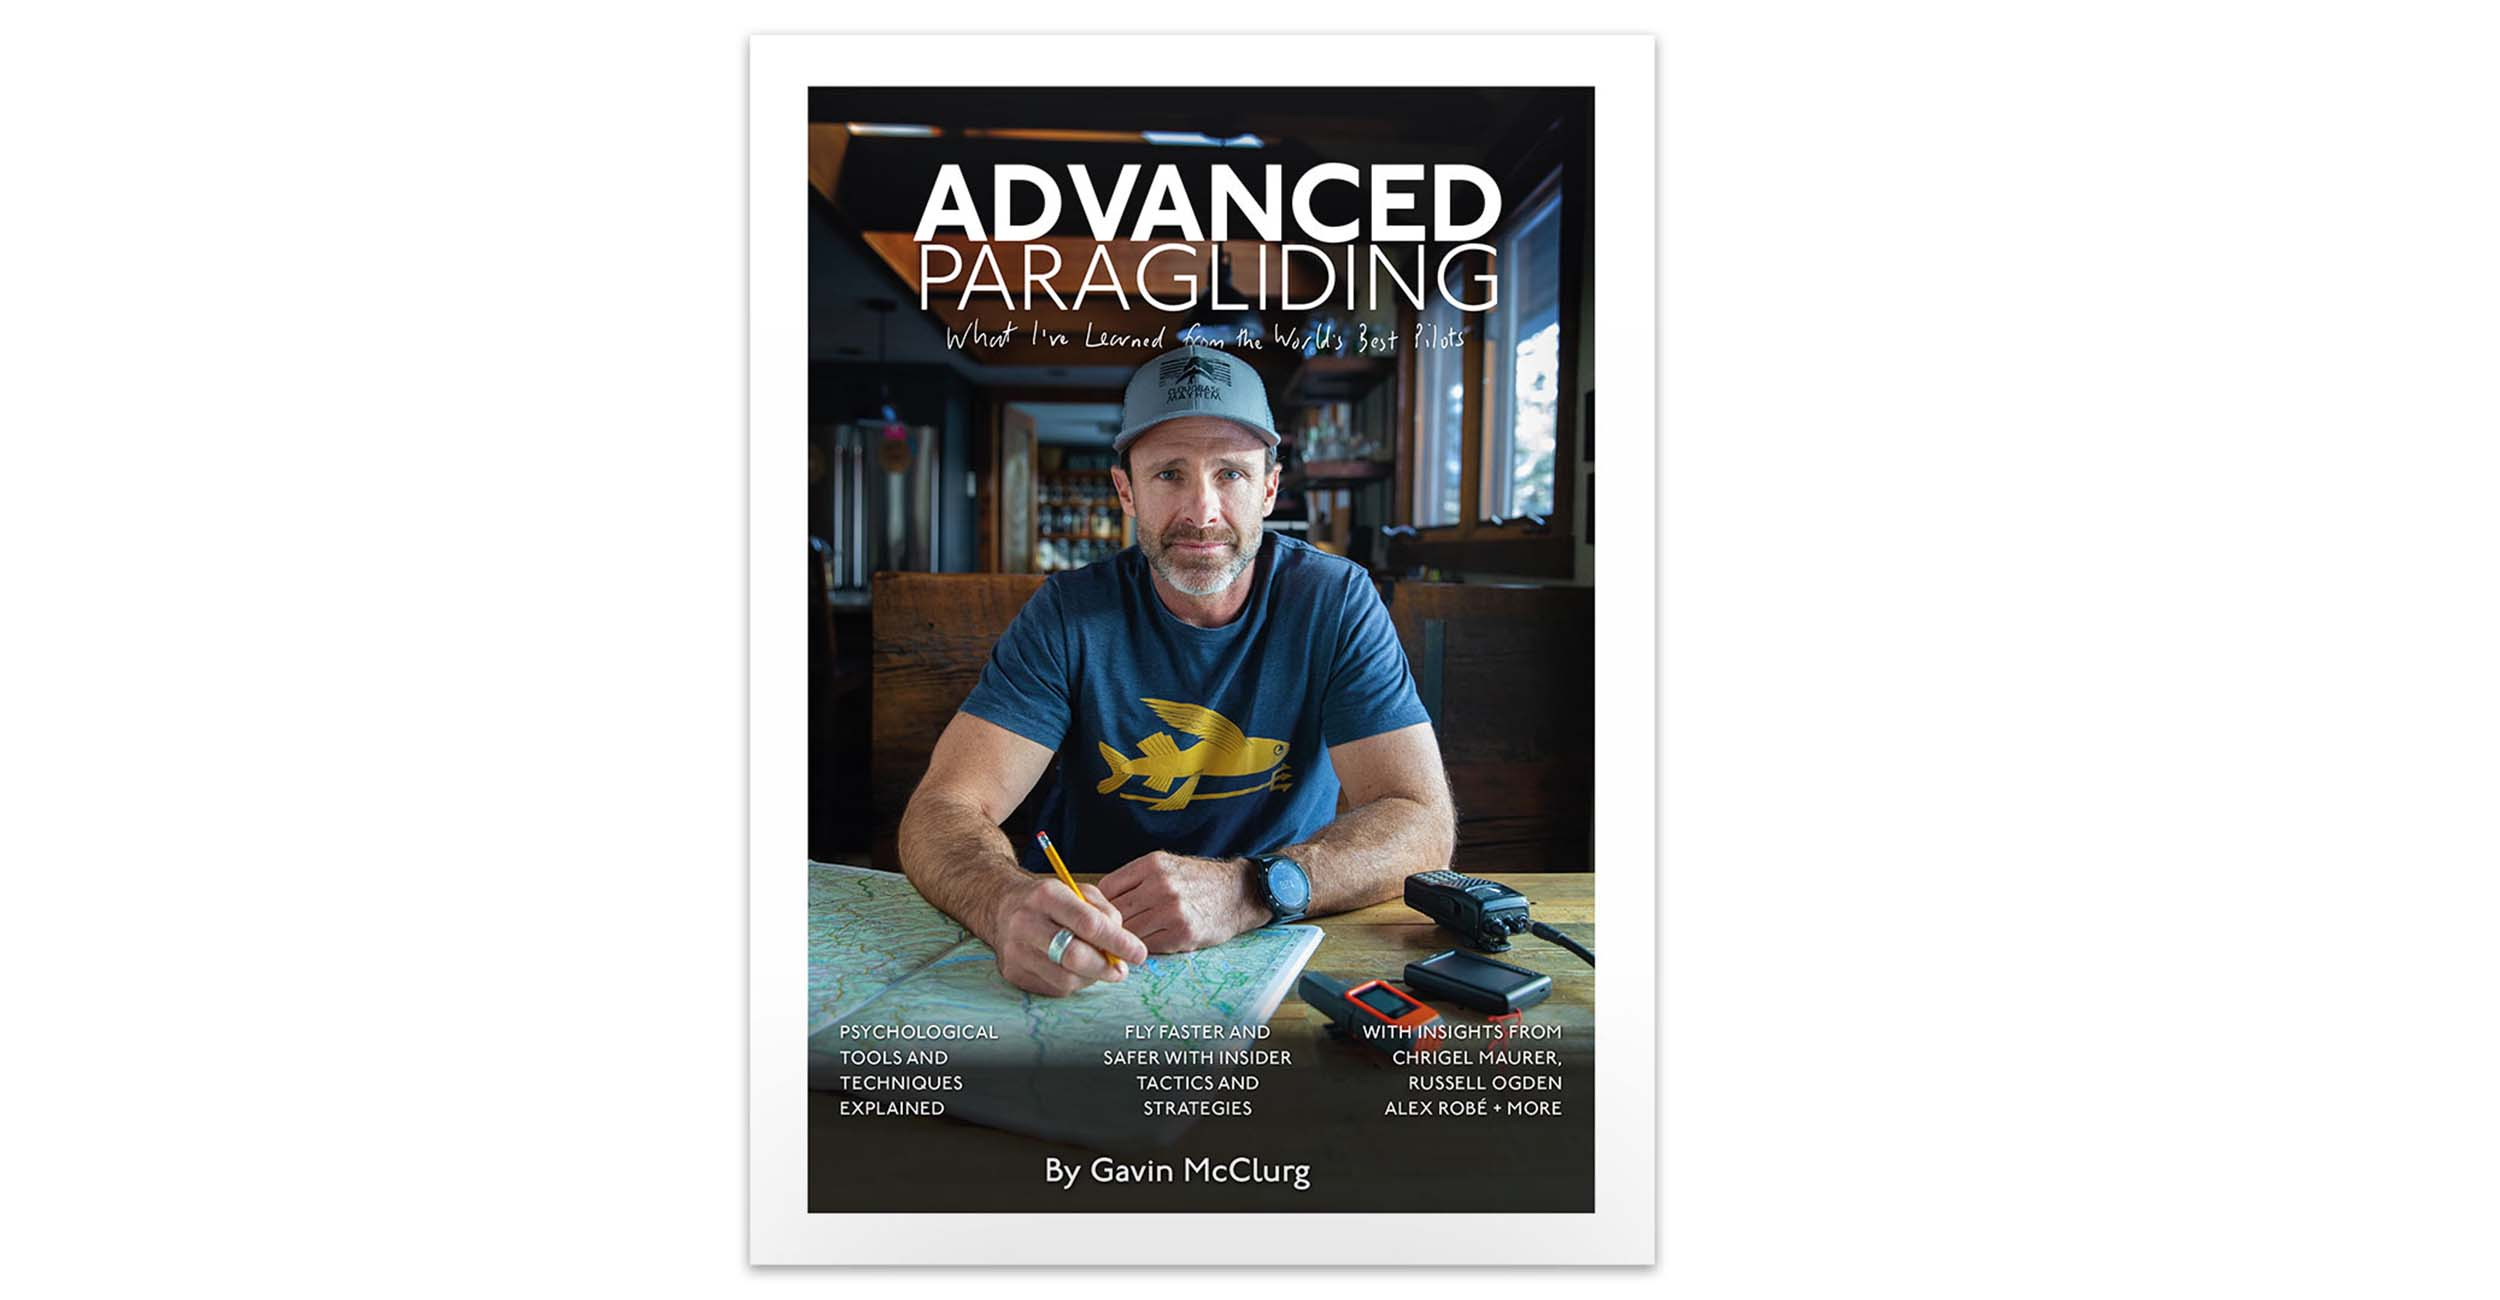 Advanced-Paragliding-Gavin-McClurg-2500